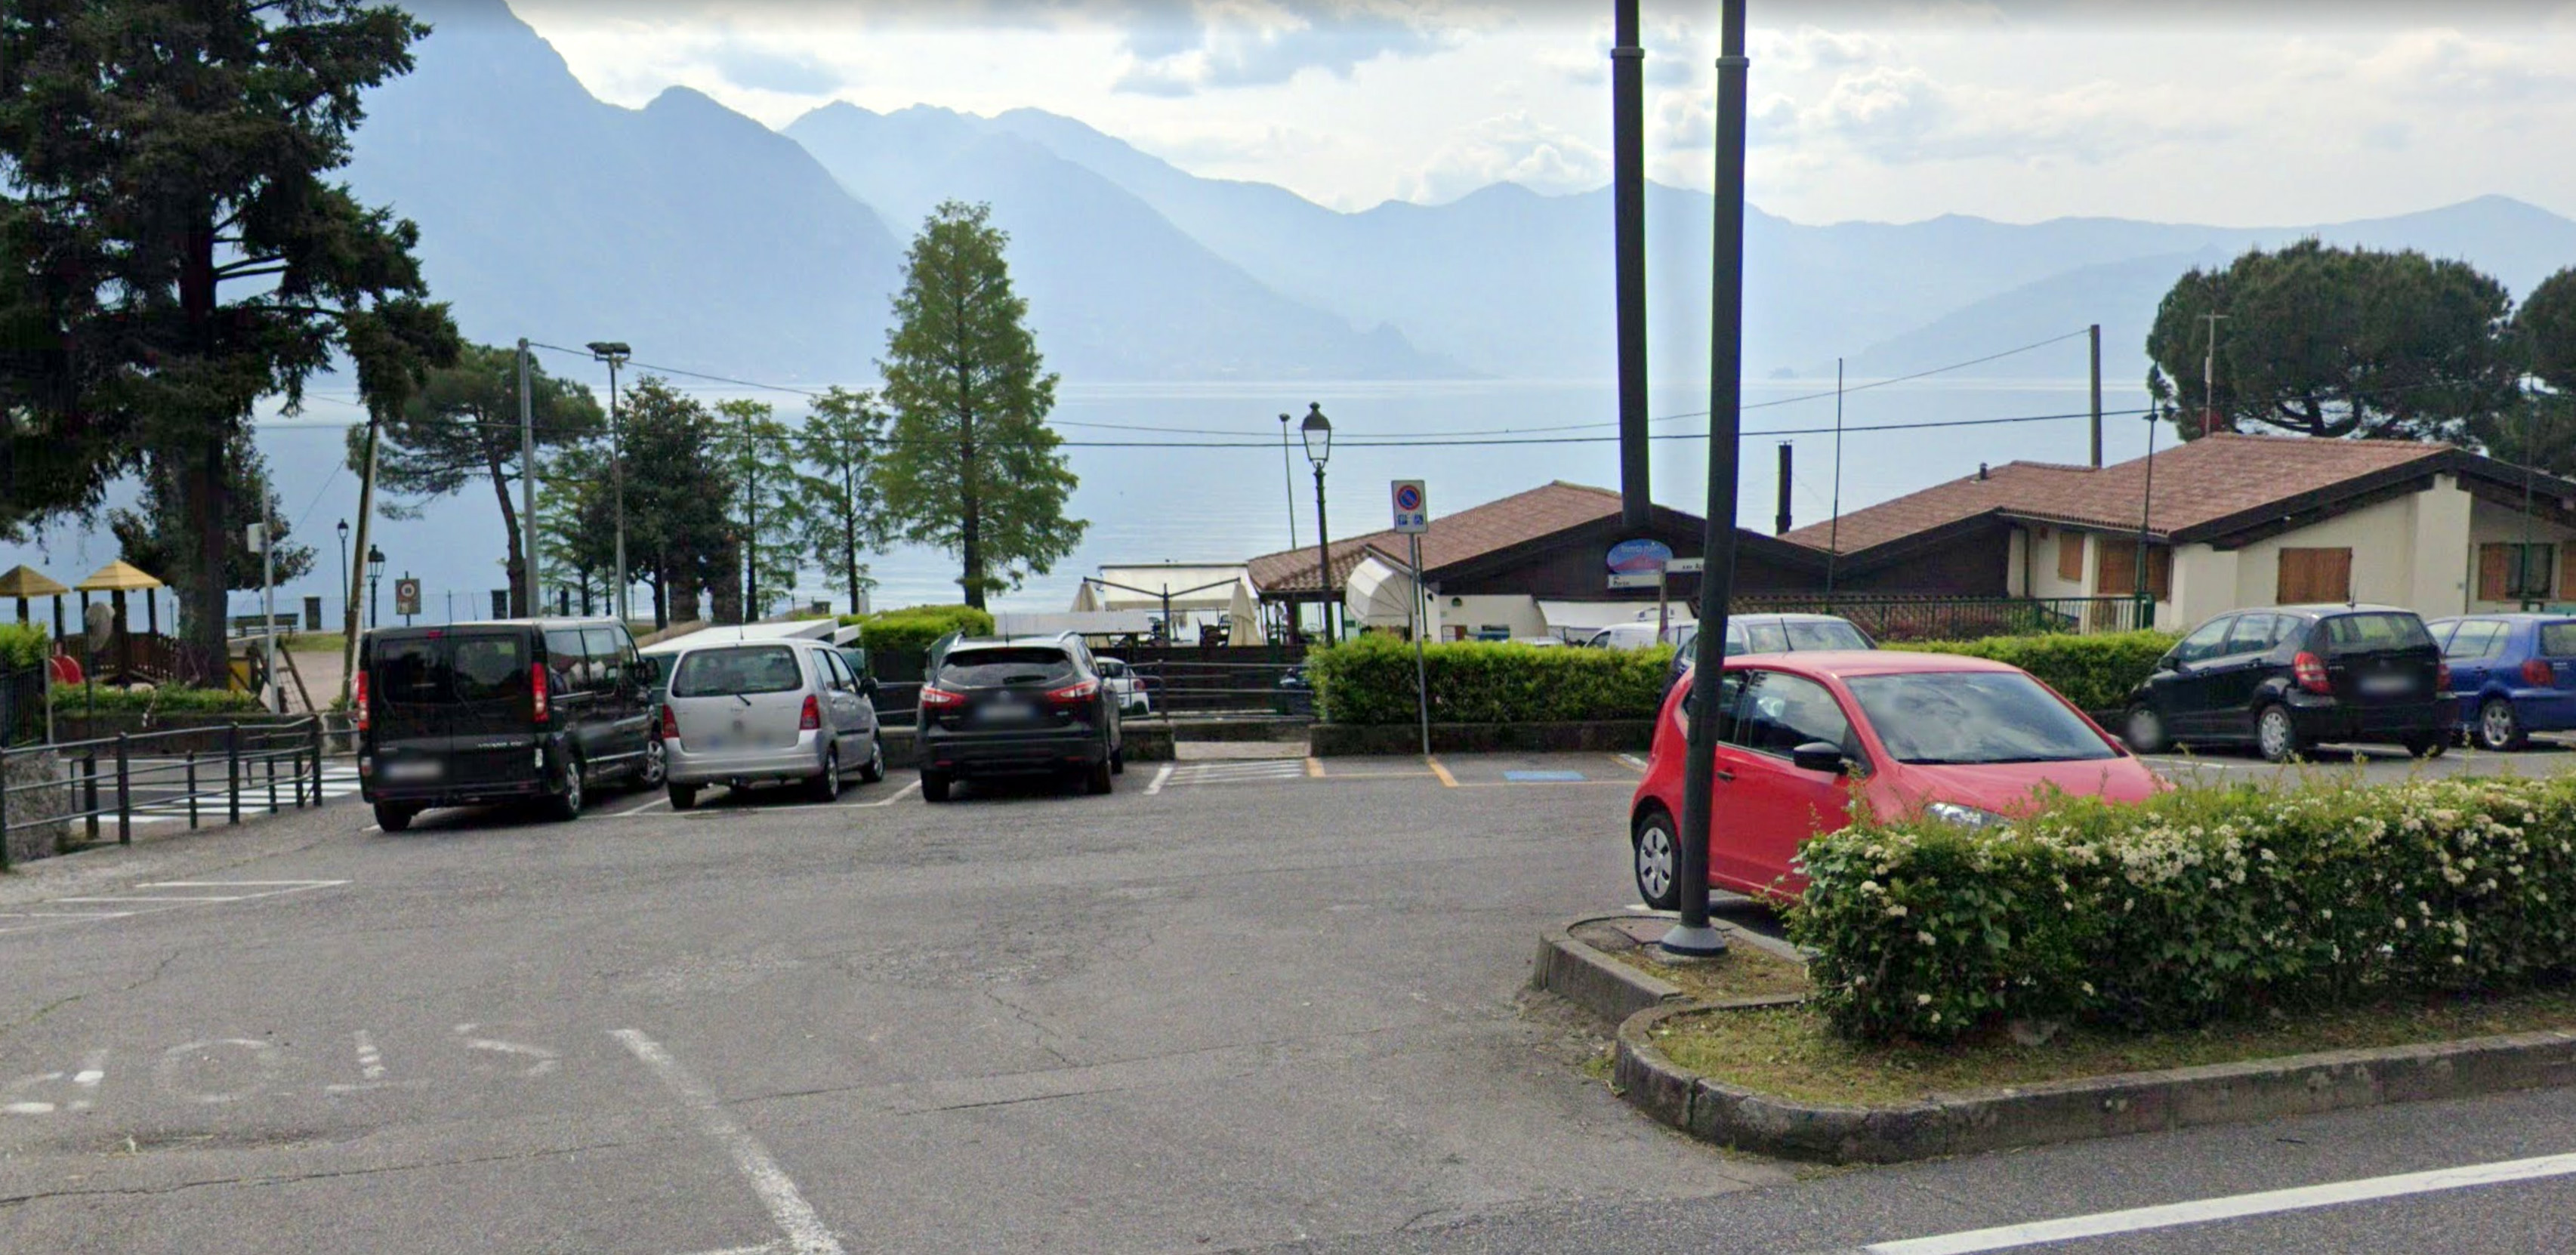 Riva di Solto_parking 4